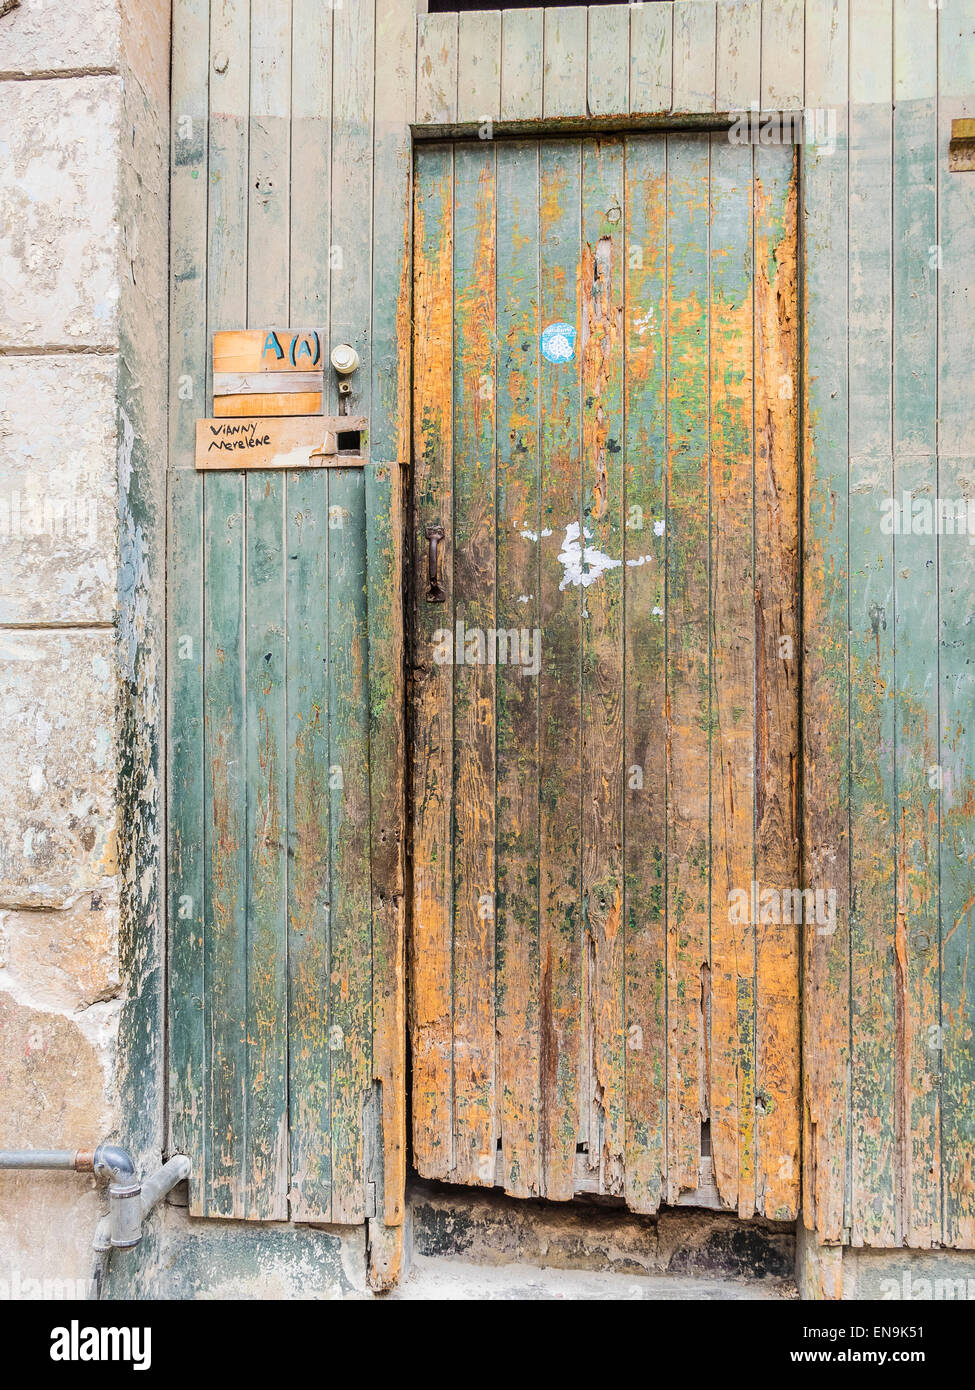 A beat-up wooden front door of a house in Havana Vieja, Cuba